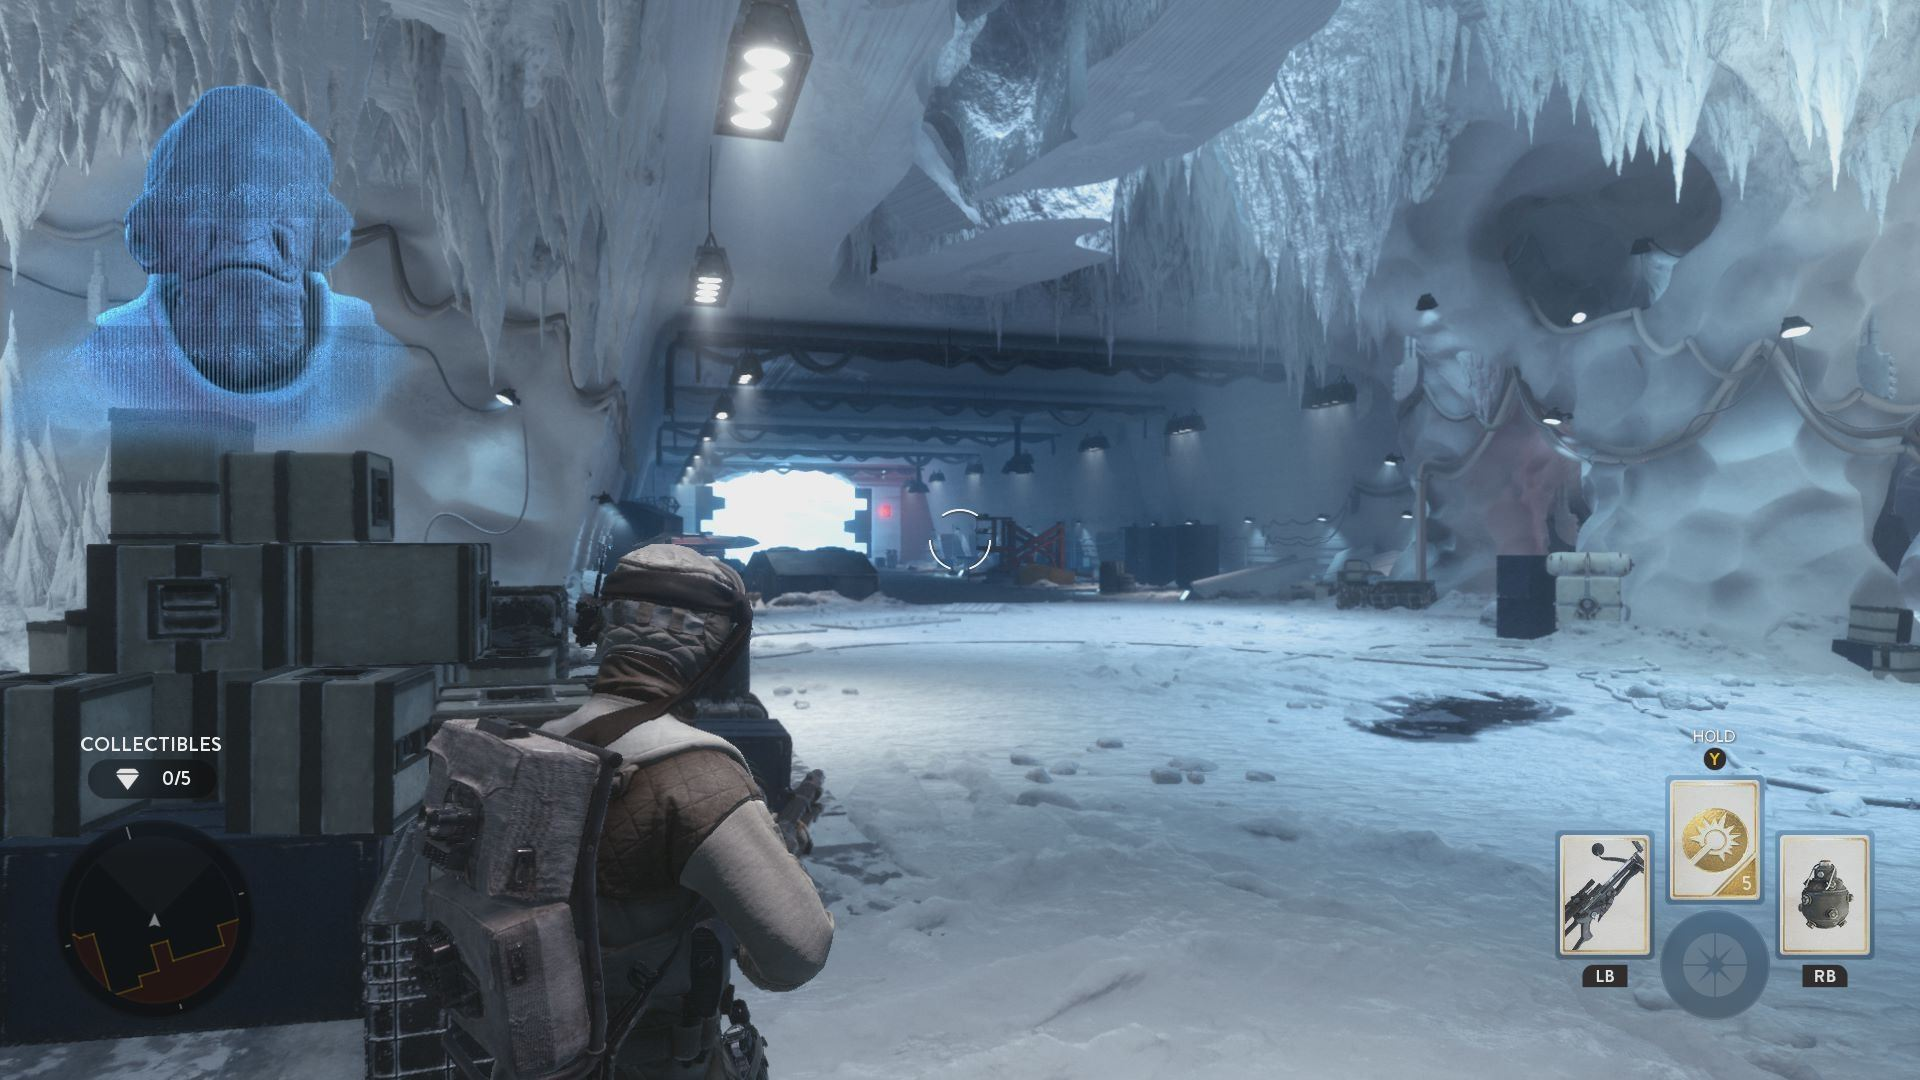 Star Wars Battlefront_Hoth Comparison 2_1